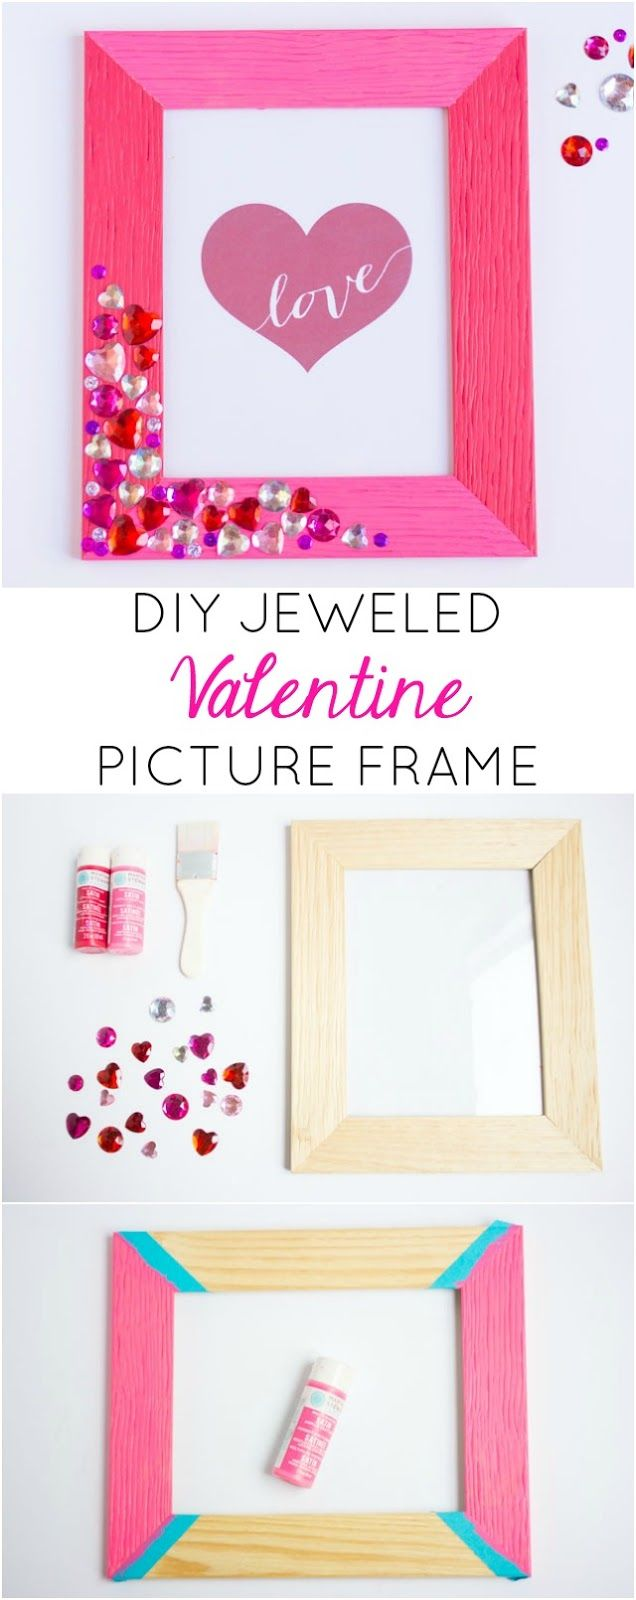 Dress up a plain picture frame for Valentine's Day with heart jewels and pink craft paint!